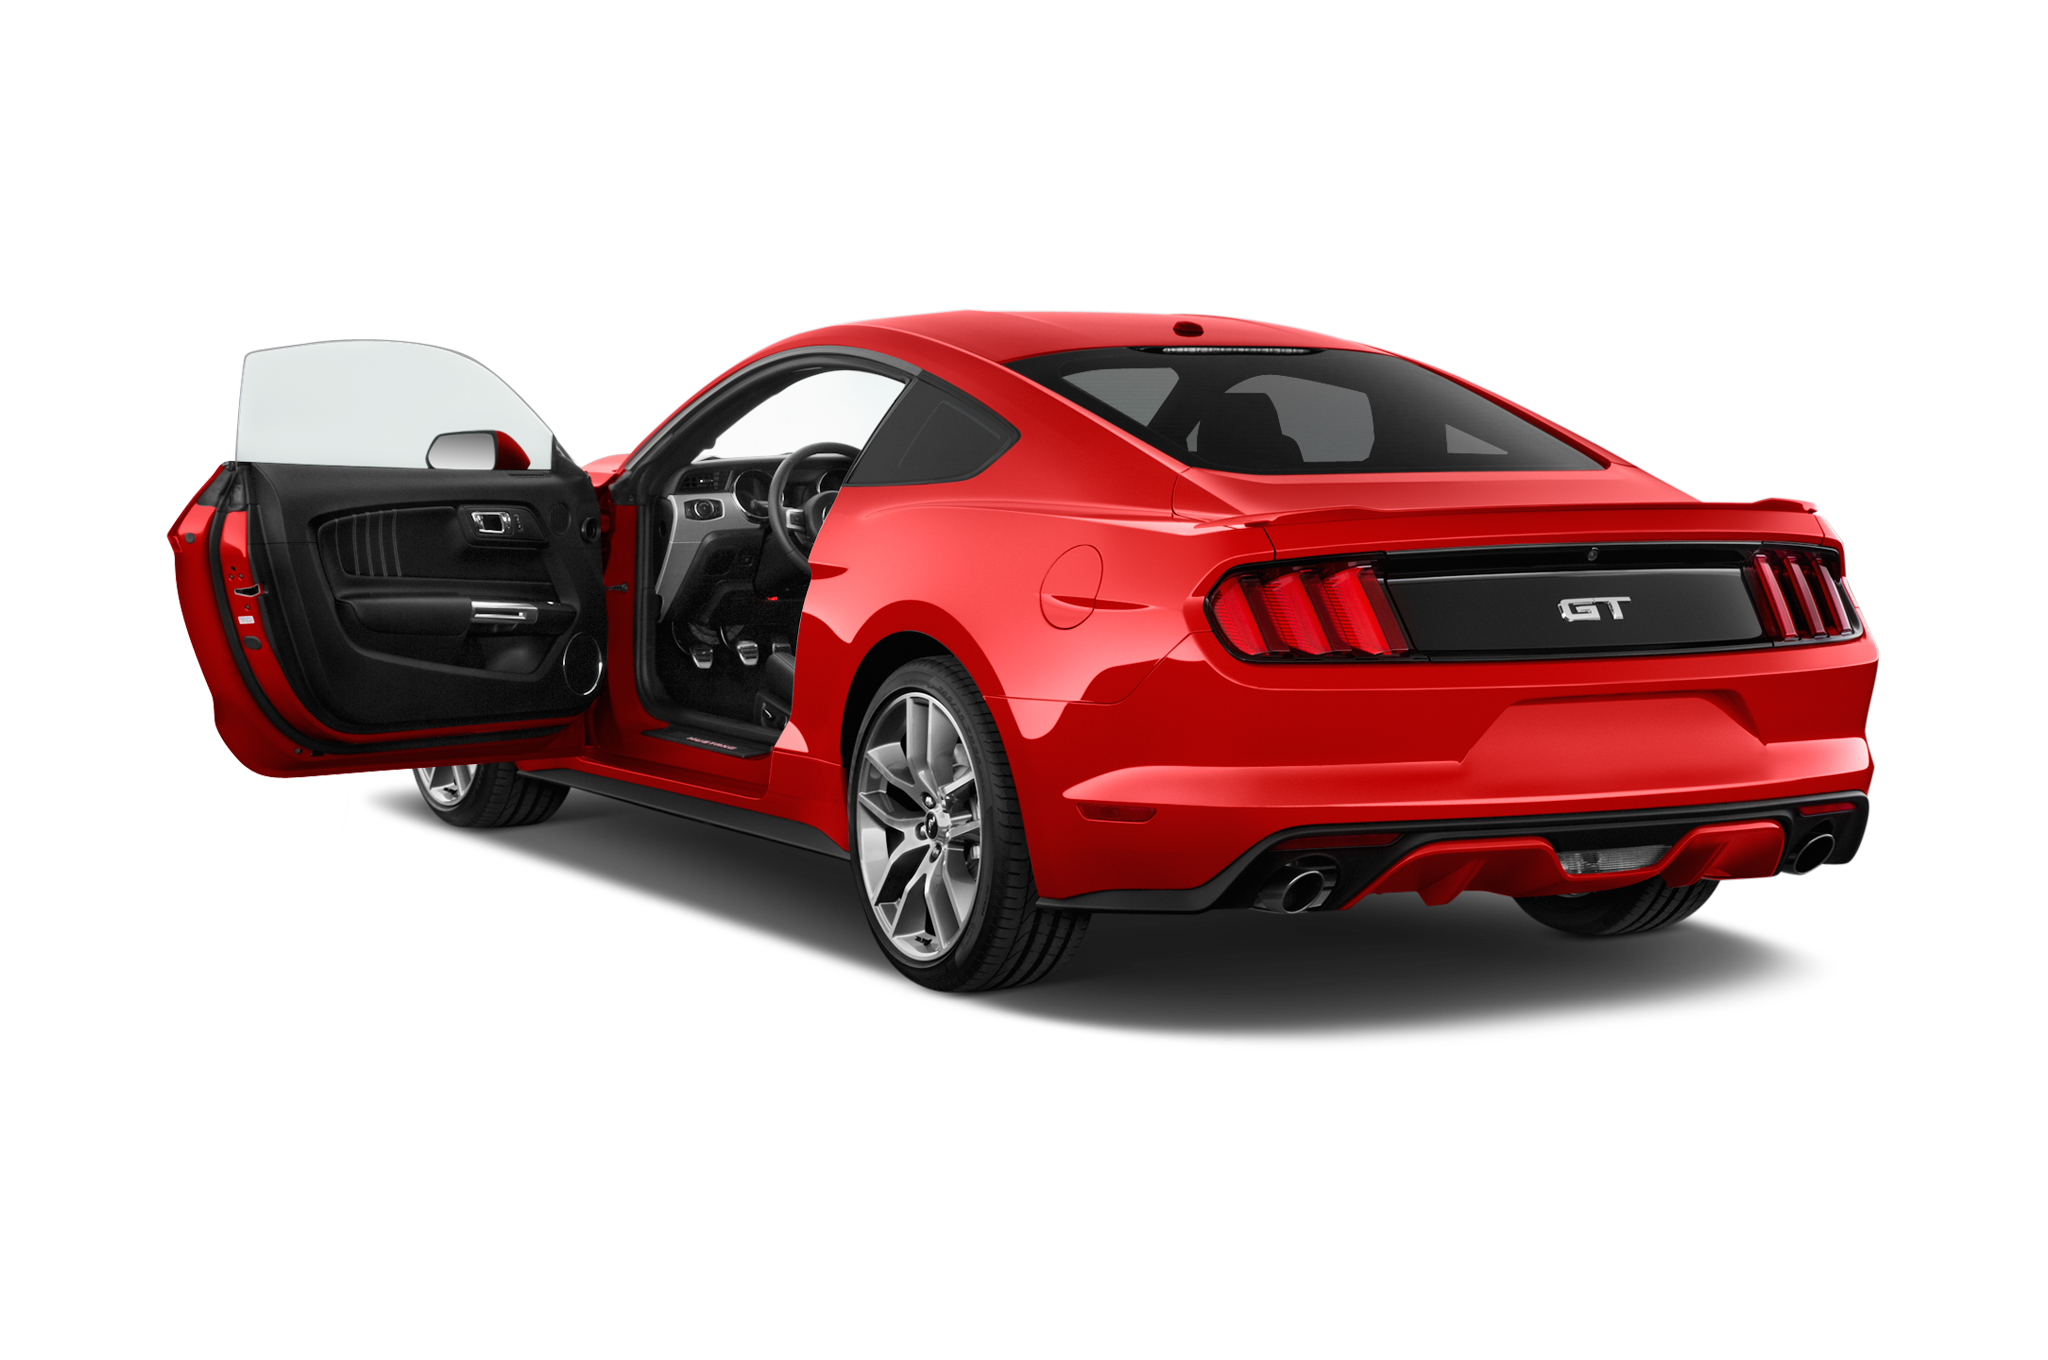 2016 ford shelby gt350 mustang configurator confirms pricing options. Black Bedroom Furniture Sets. Home Design Ideas